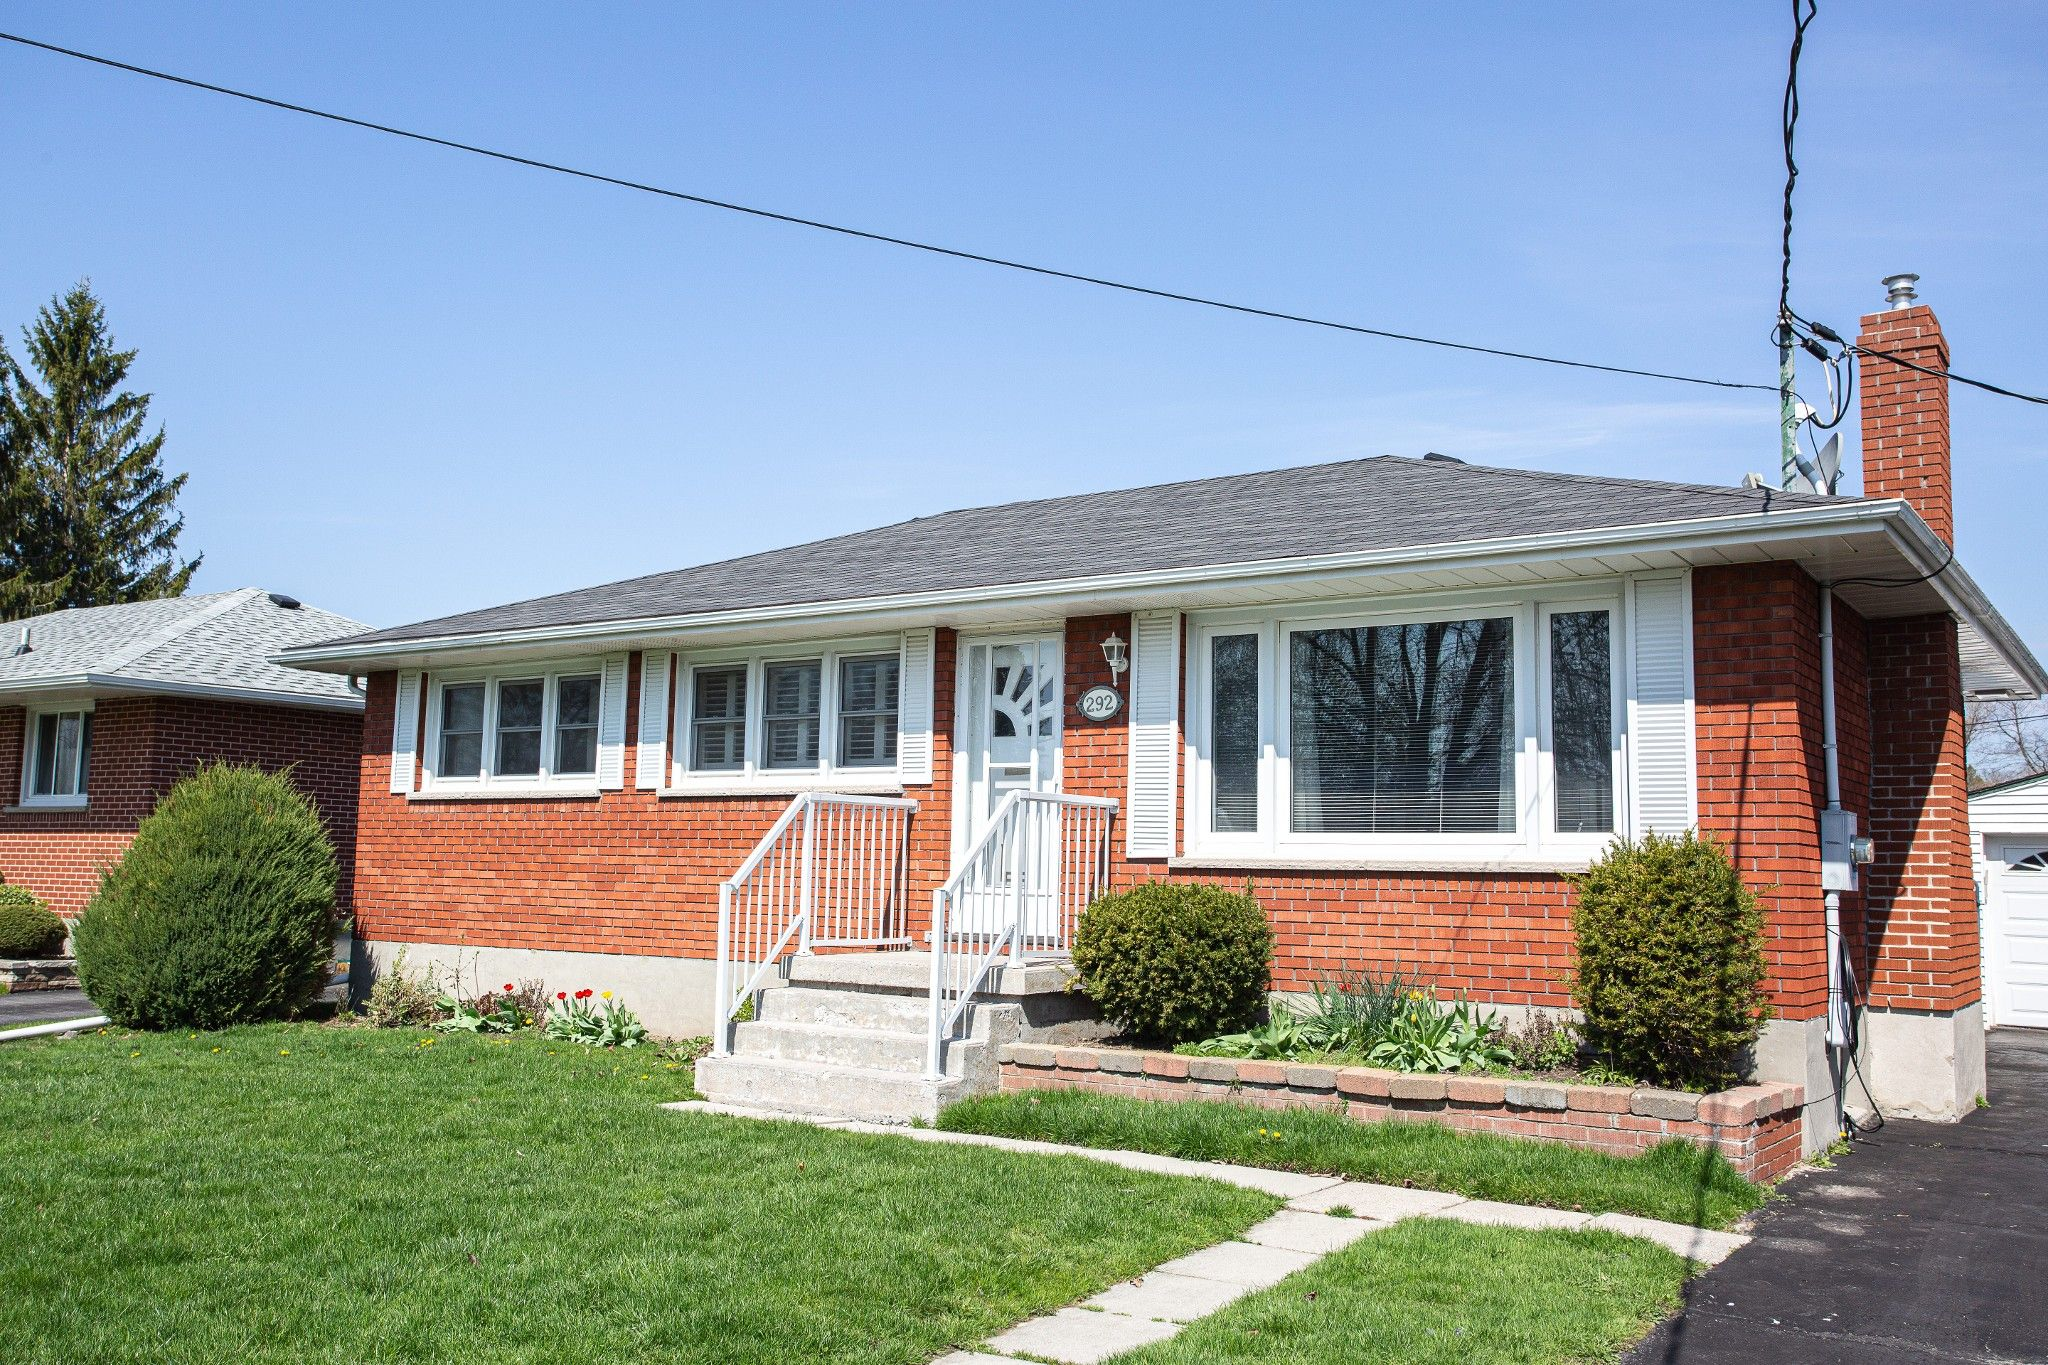 Main Photo: 292 Nickerson Drive in Cobourg: House for sale : MLS®# X5206303